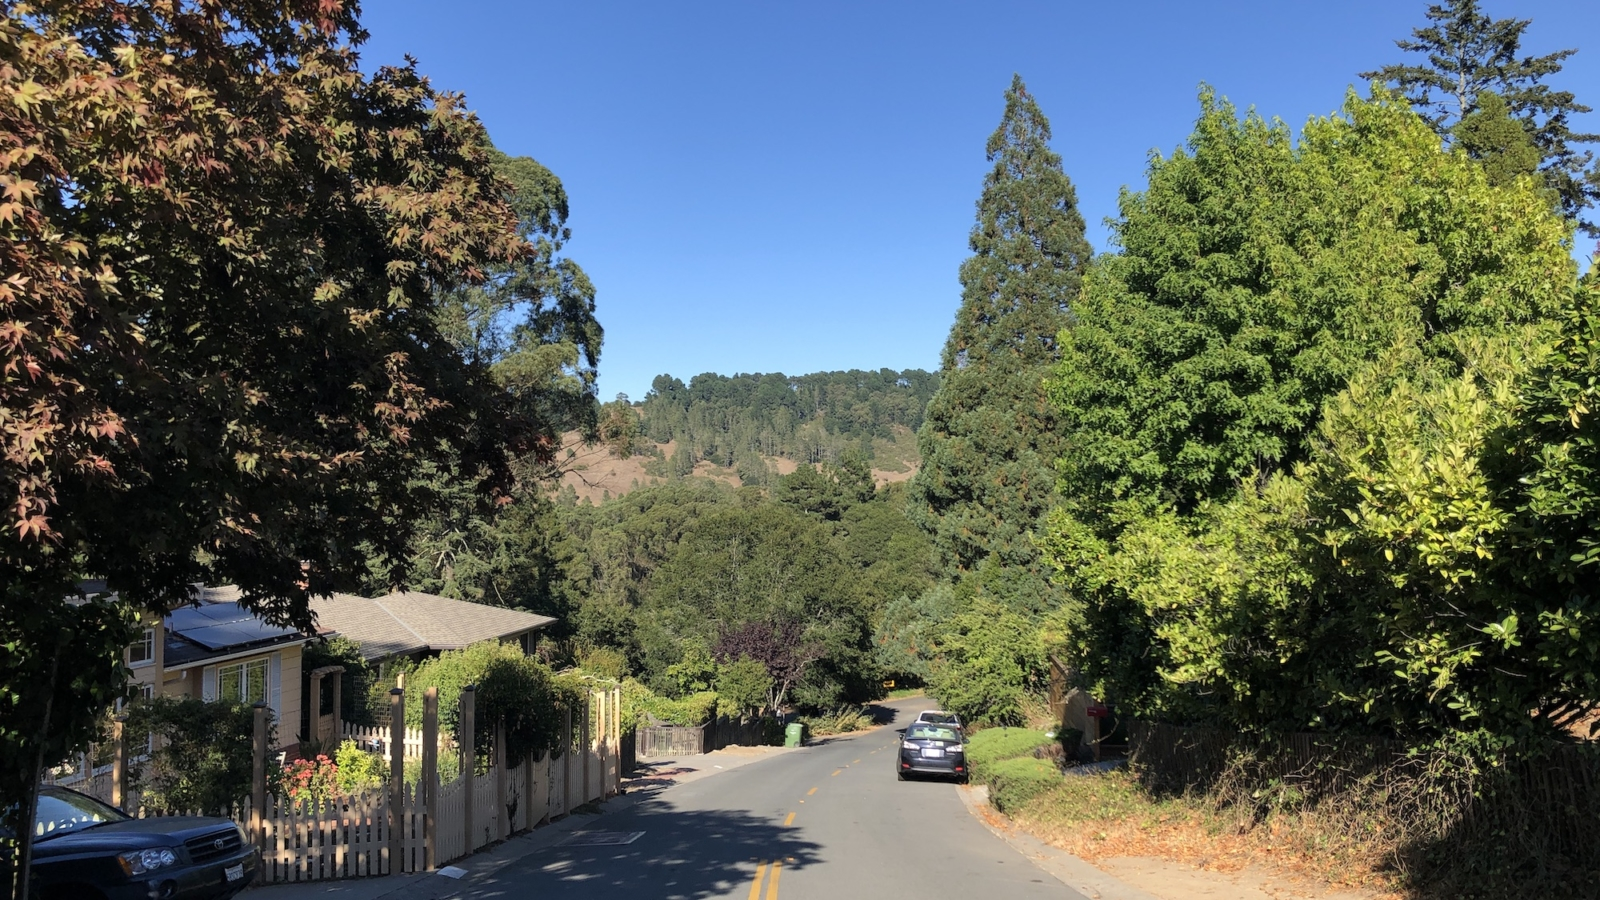 tree lined residential street leads into undeveloped hill